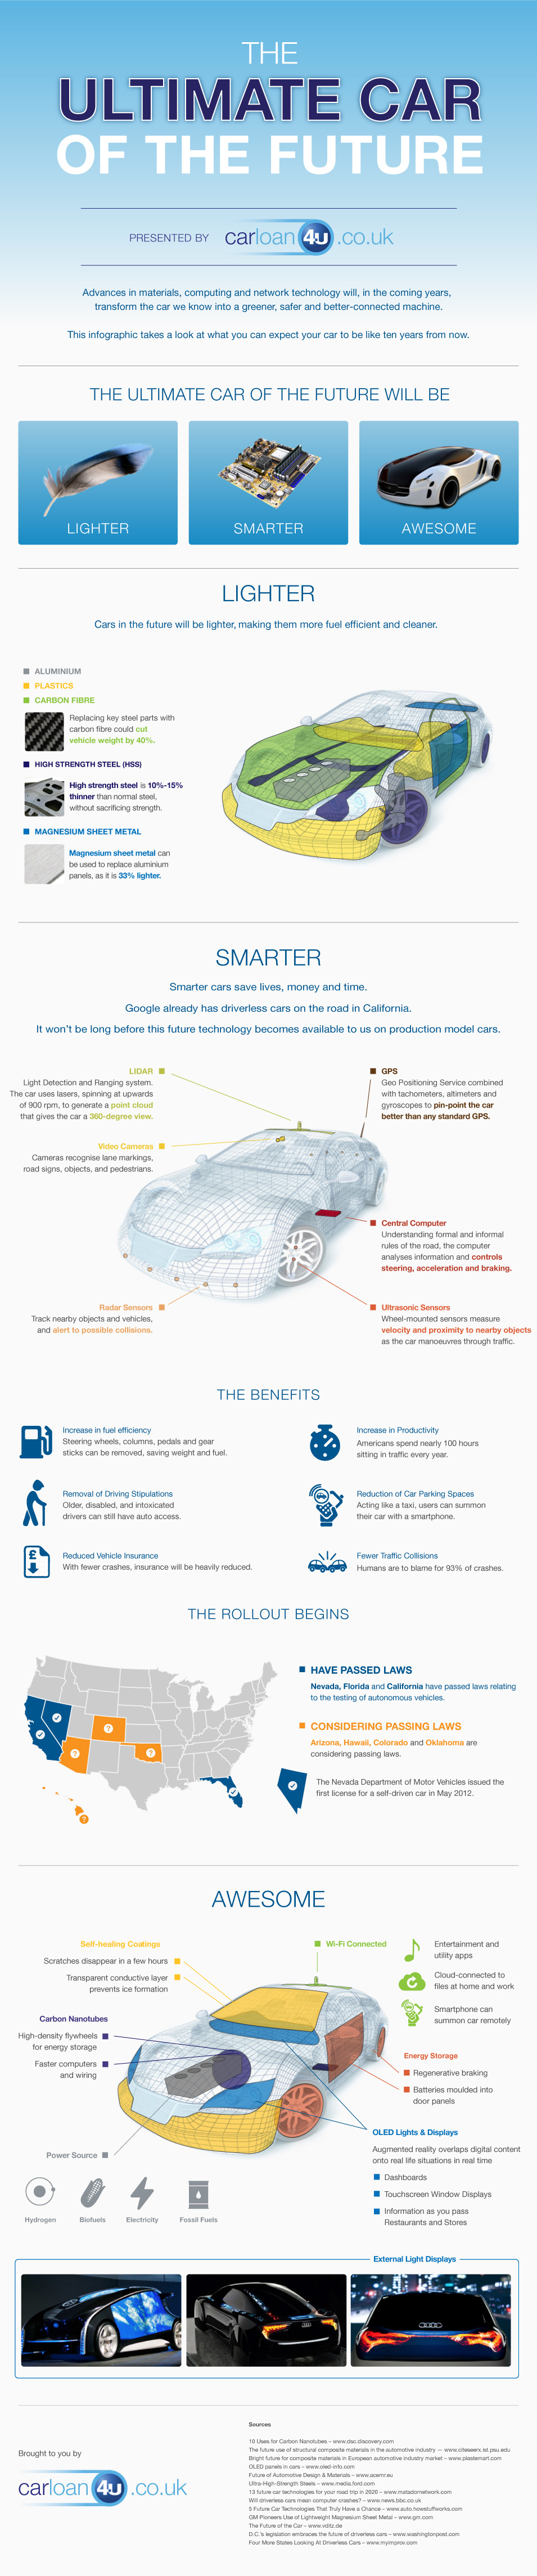 Ultimate car of the future infographic